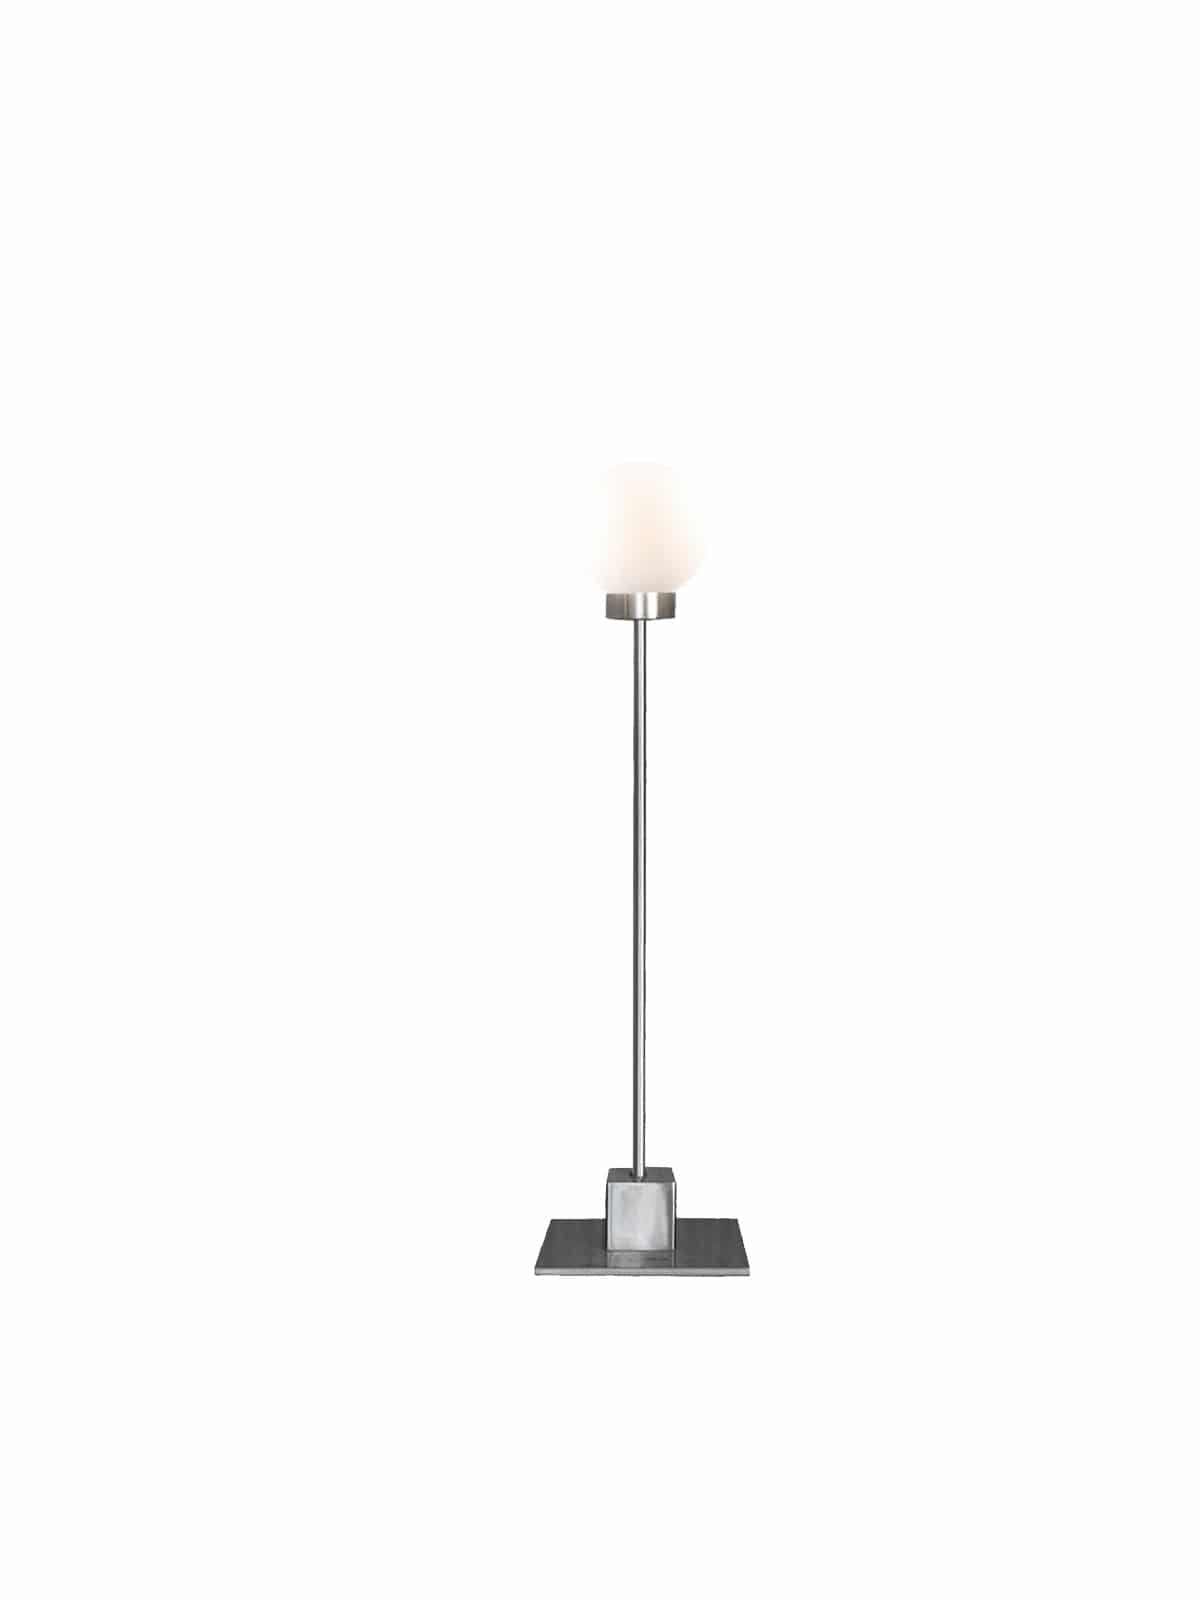 Tischleuchte Snowball Northern Lighting Designort Onlineshop